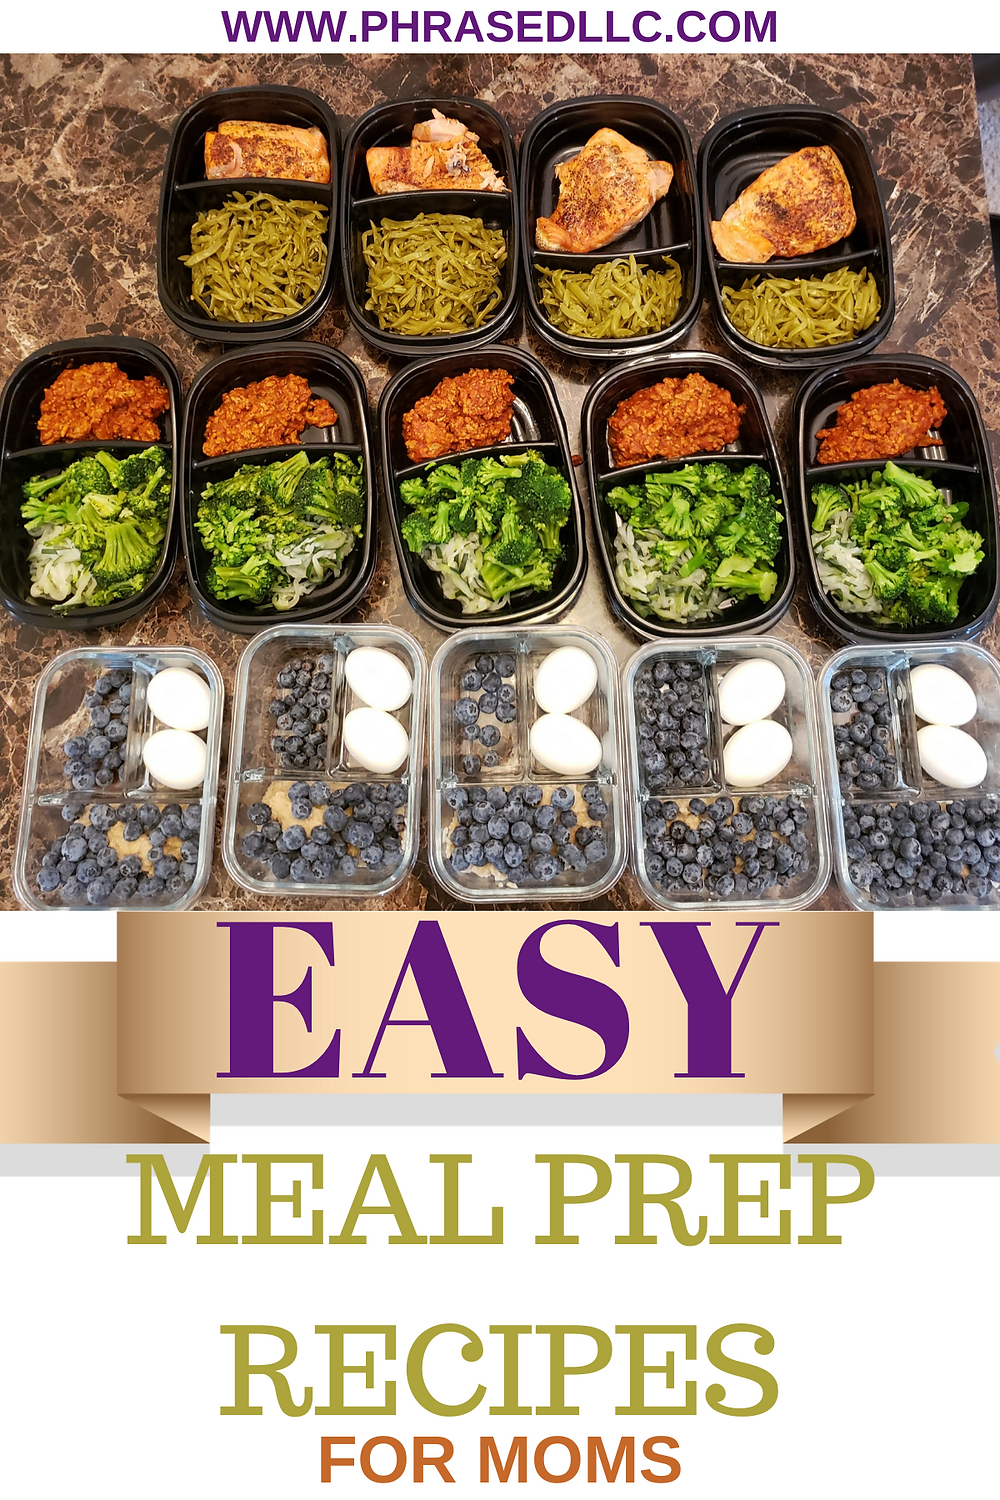 Easy meal prep recipes to get busy moms in and out of the kitchen quickly and back to achieving their health and fitness goals.